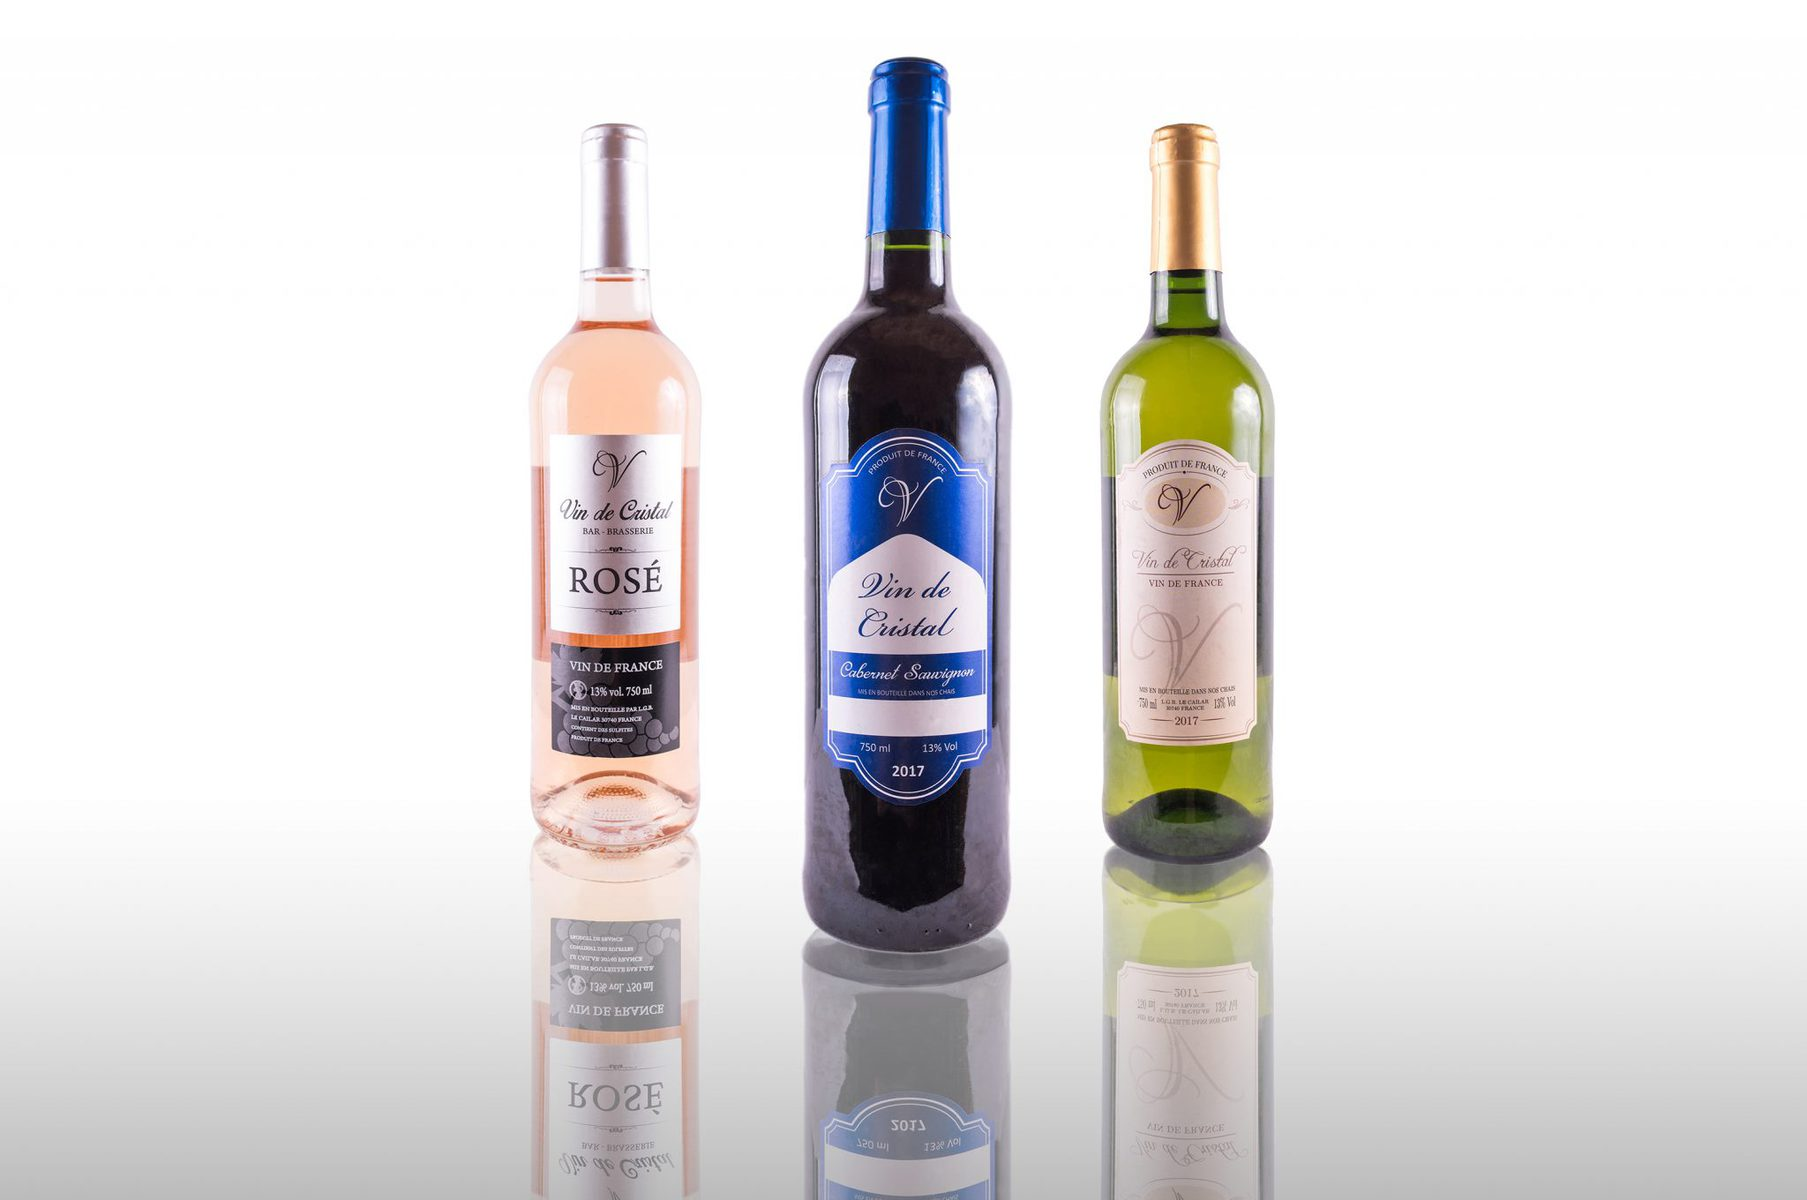 Product photograph of wine bottles